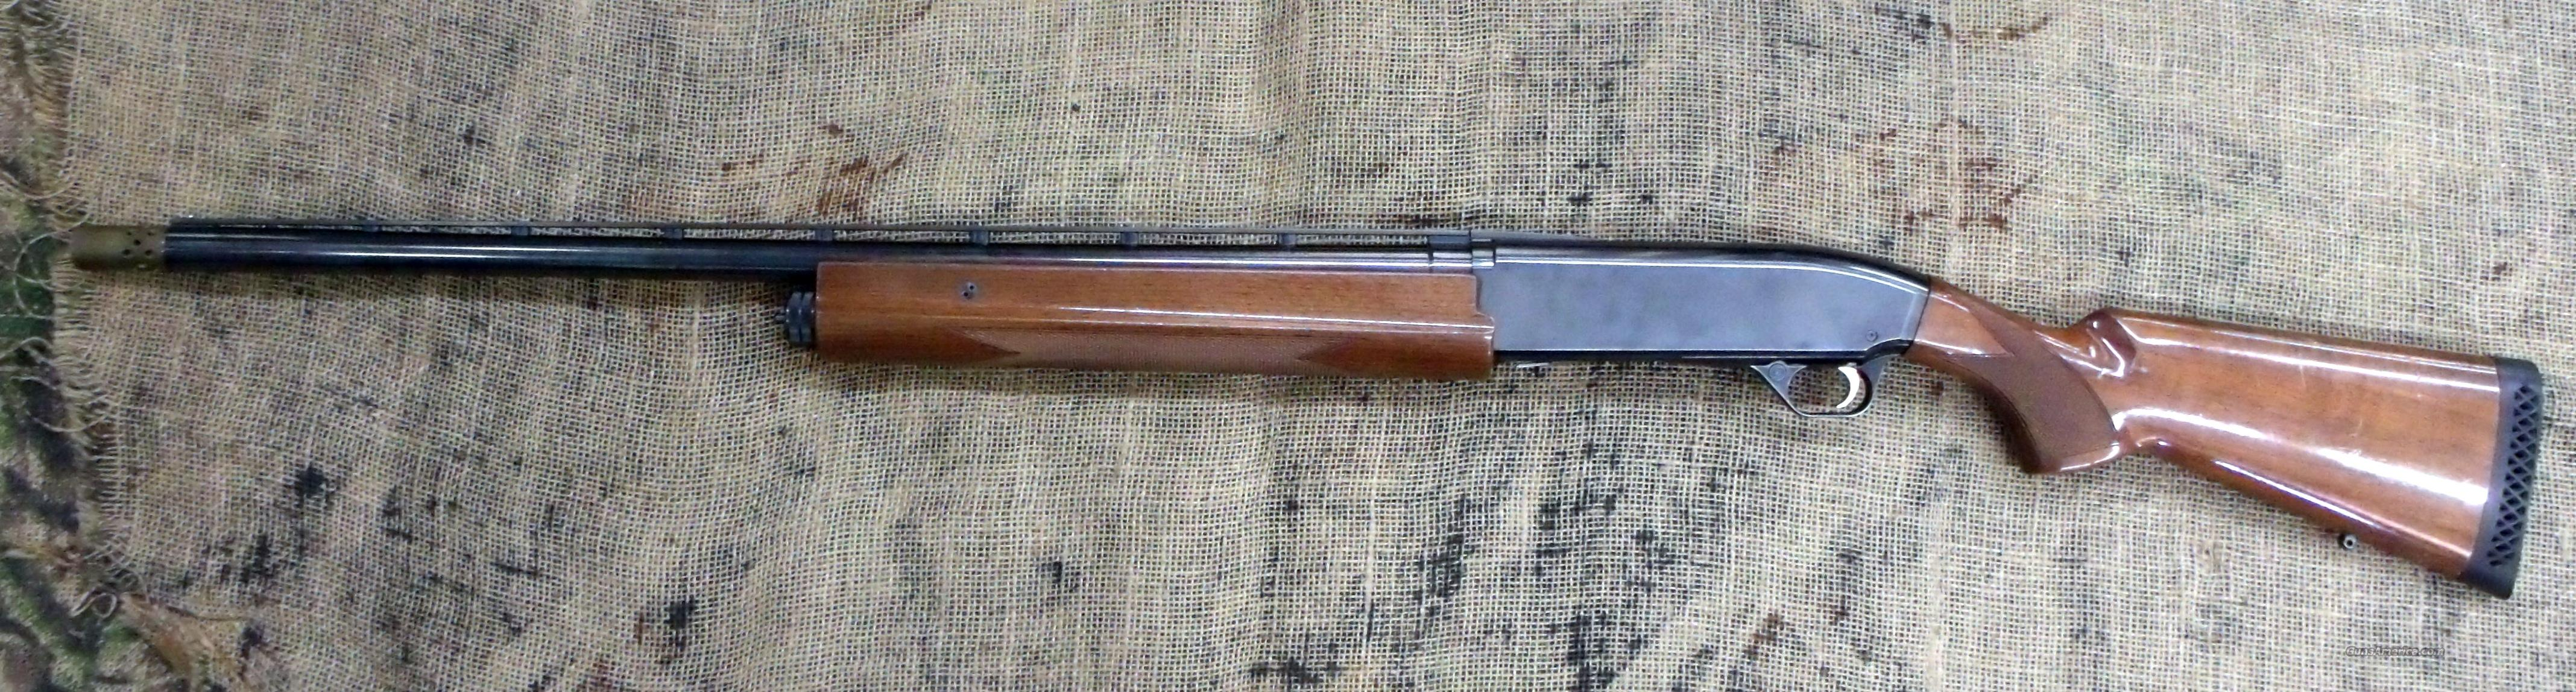 BROWNING Gold 10 Hunter Shotgun, 10 Ga  Guns > Shotguns > Browning Shotguns > Autoloaders > Hunting